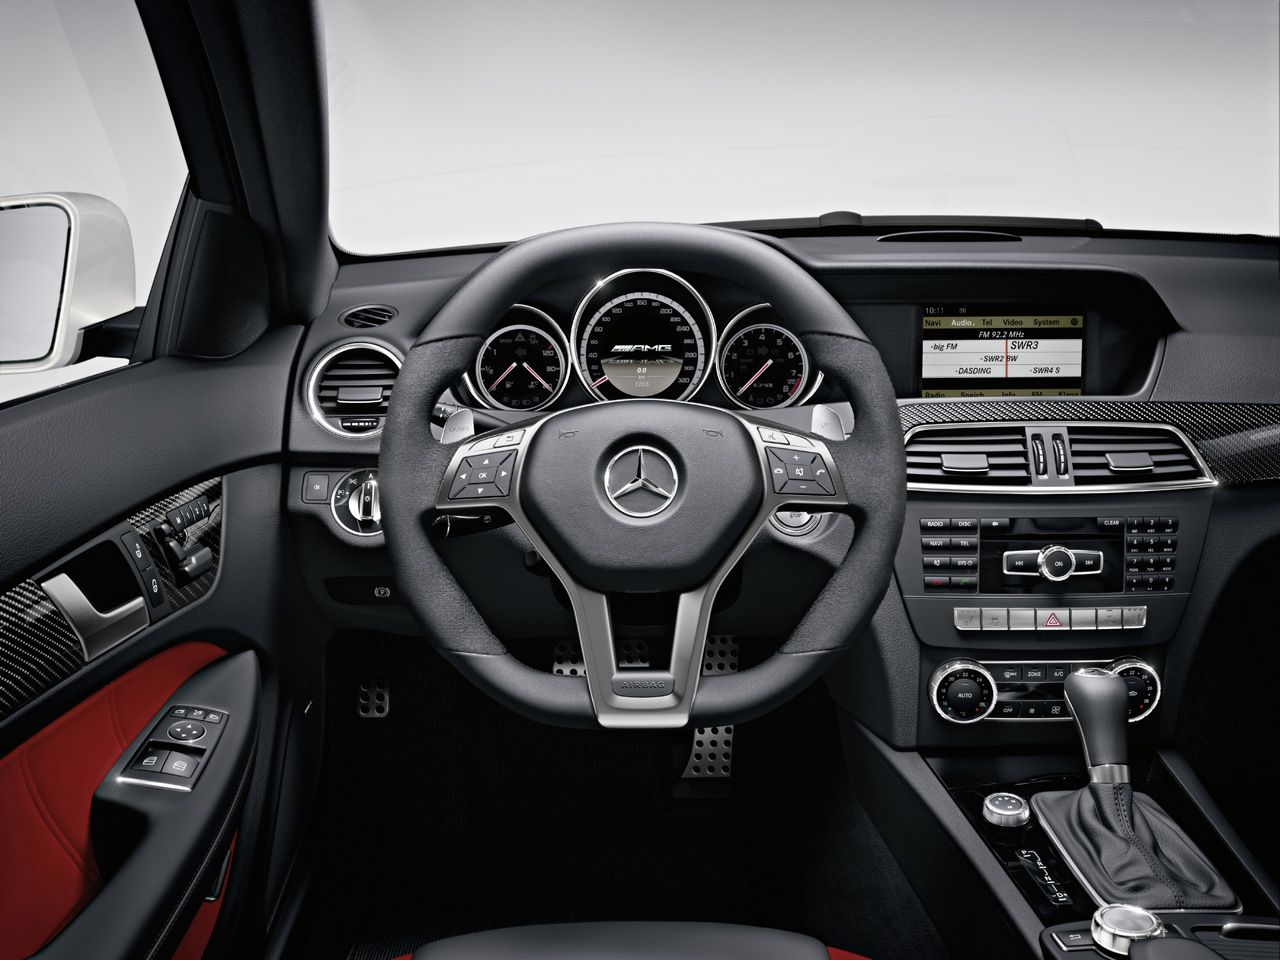 mercedes benz c63 amg from the inside mercedes benz c63 amg pinterest mercedes benz c63. Black Bedroom Furniture Sets. Home Design Ideas